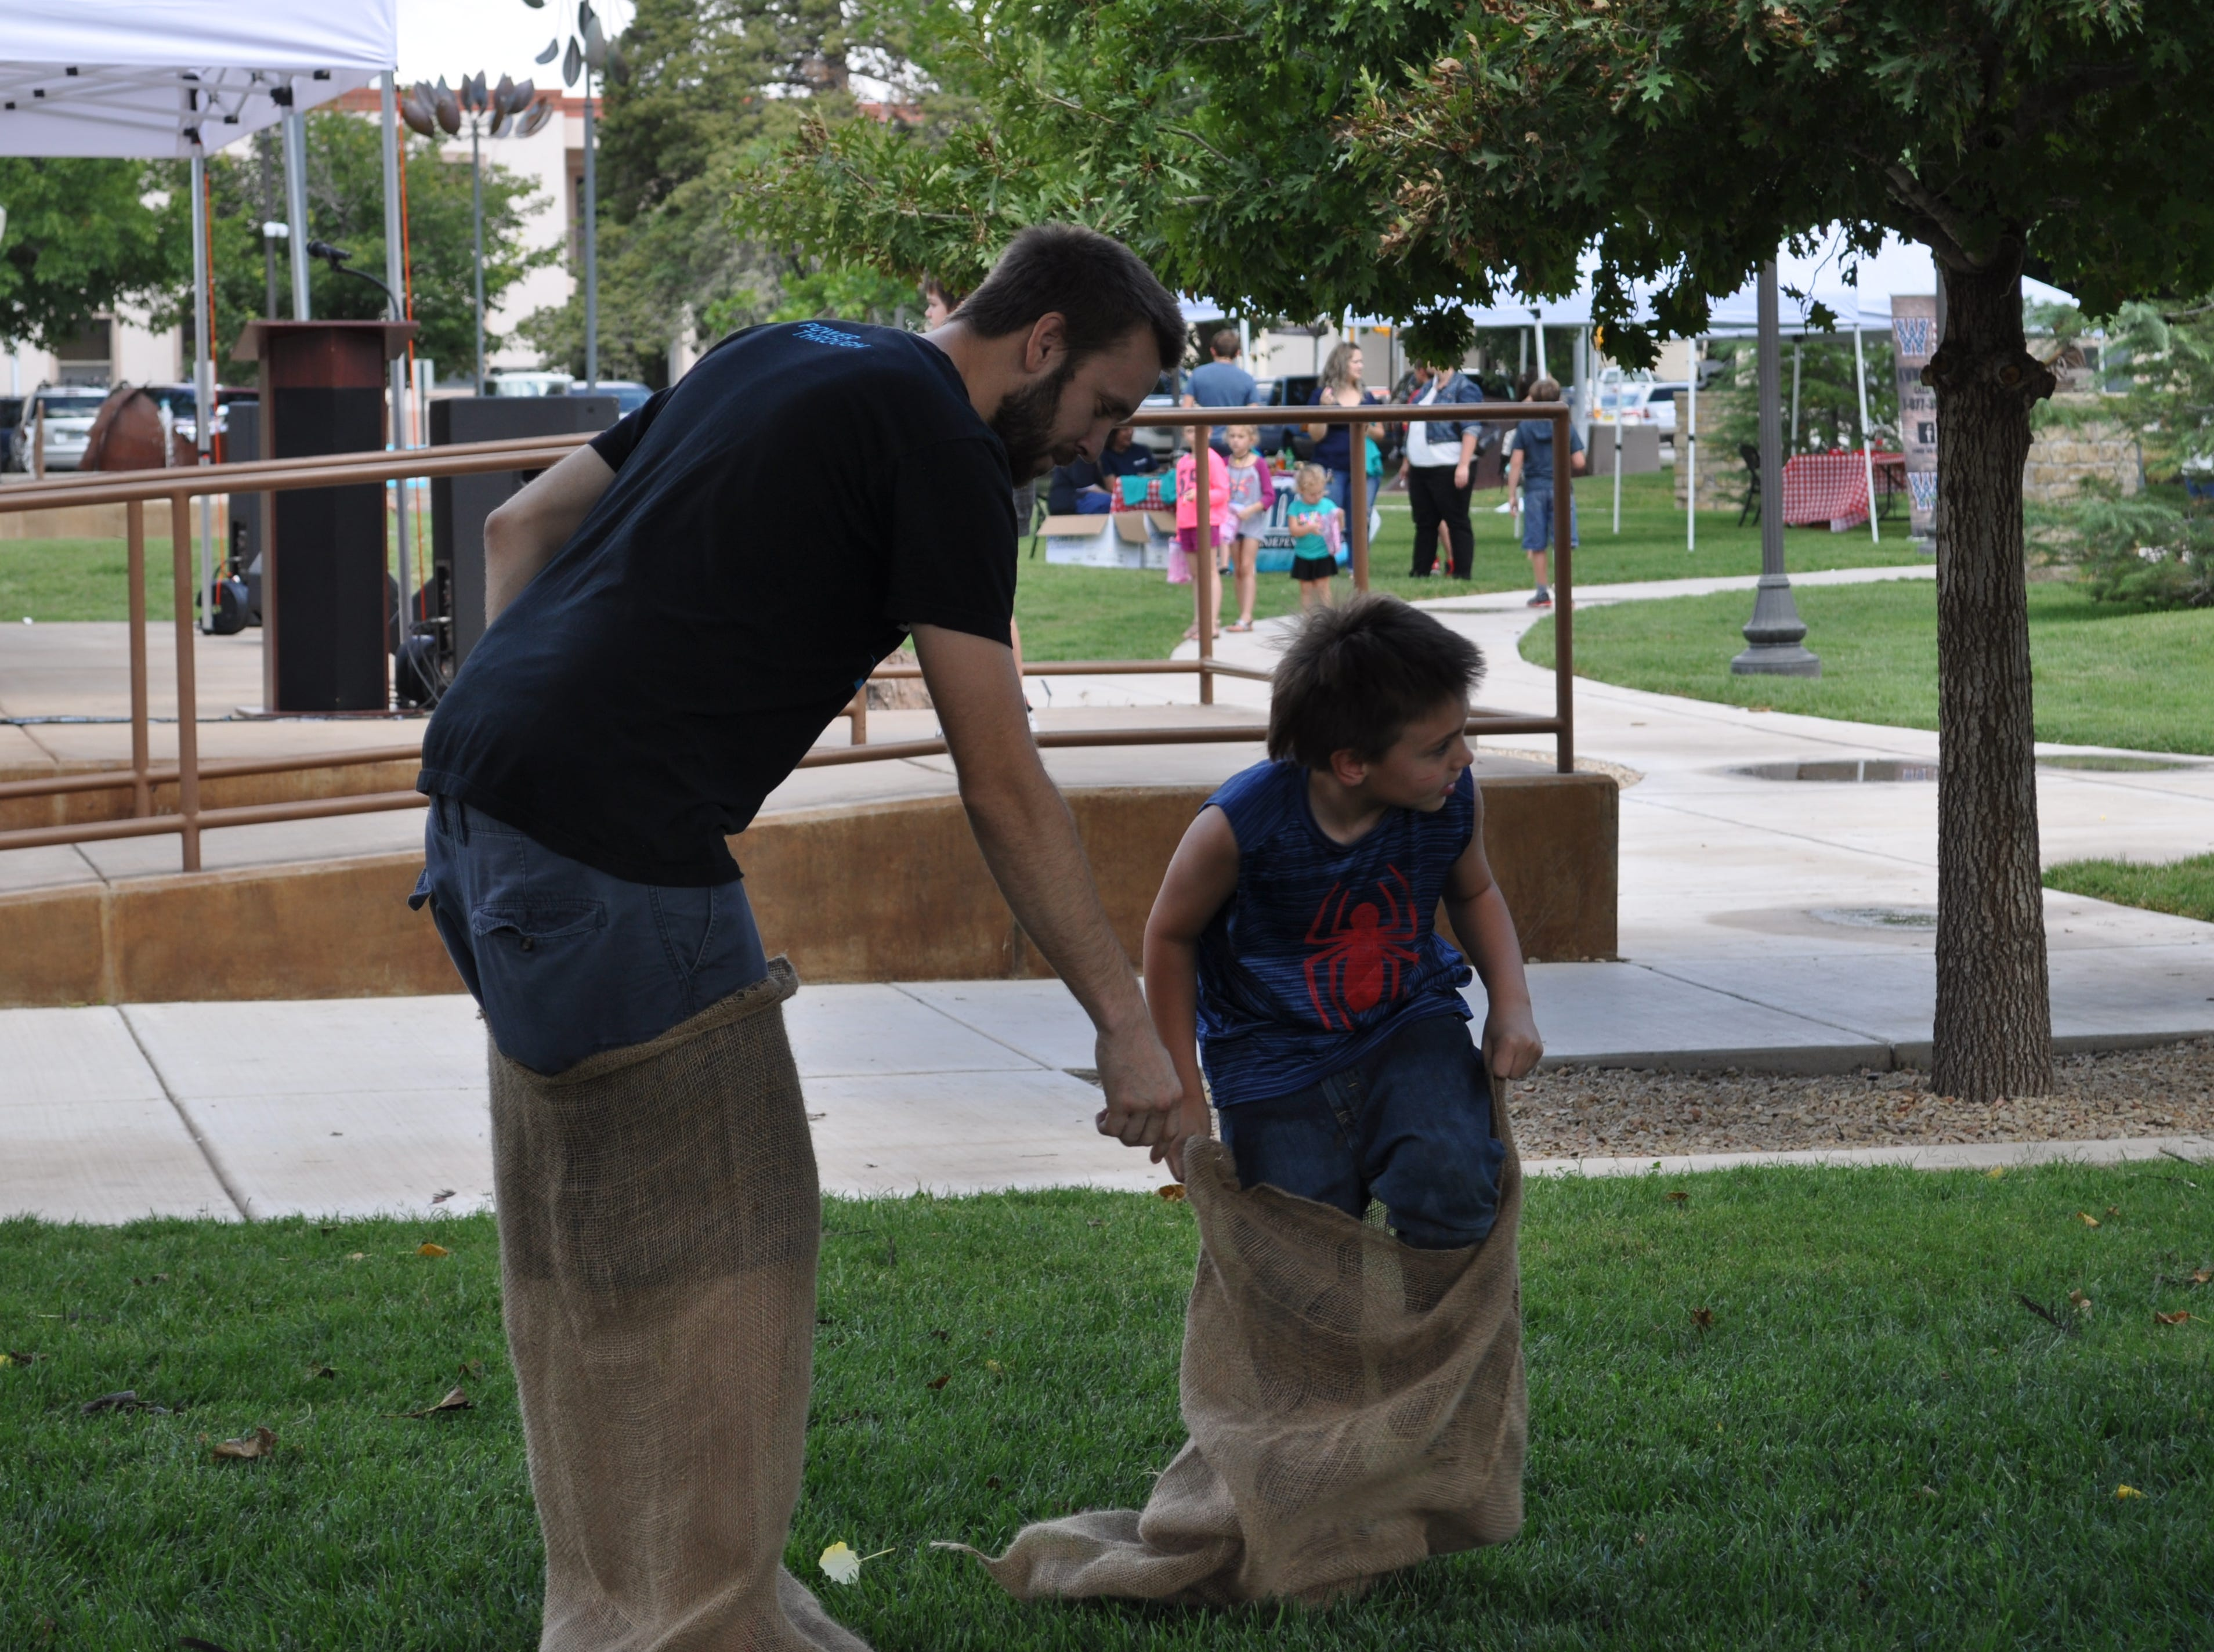 Sack races were part of the fun for children and adults at the Halagueno Arts Park where the annual Heritage Fest was held in Carlsbad, New Mexico.